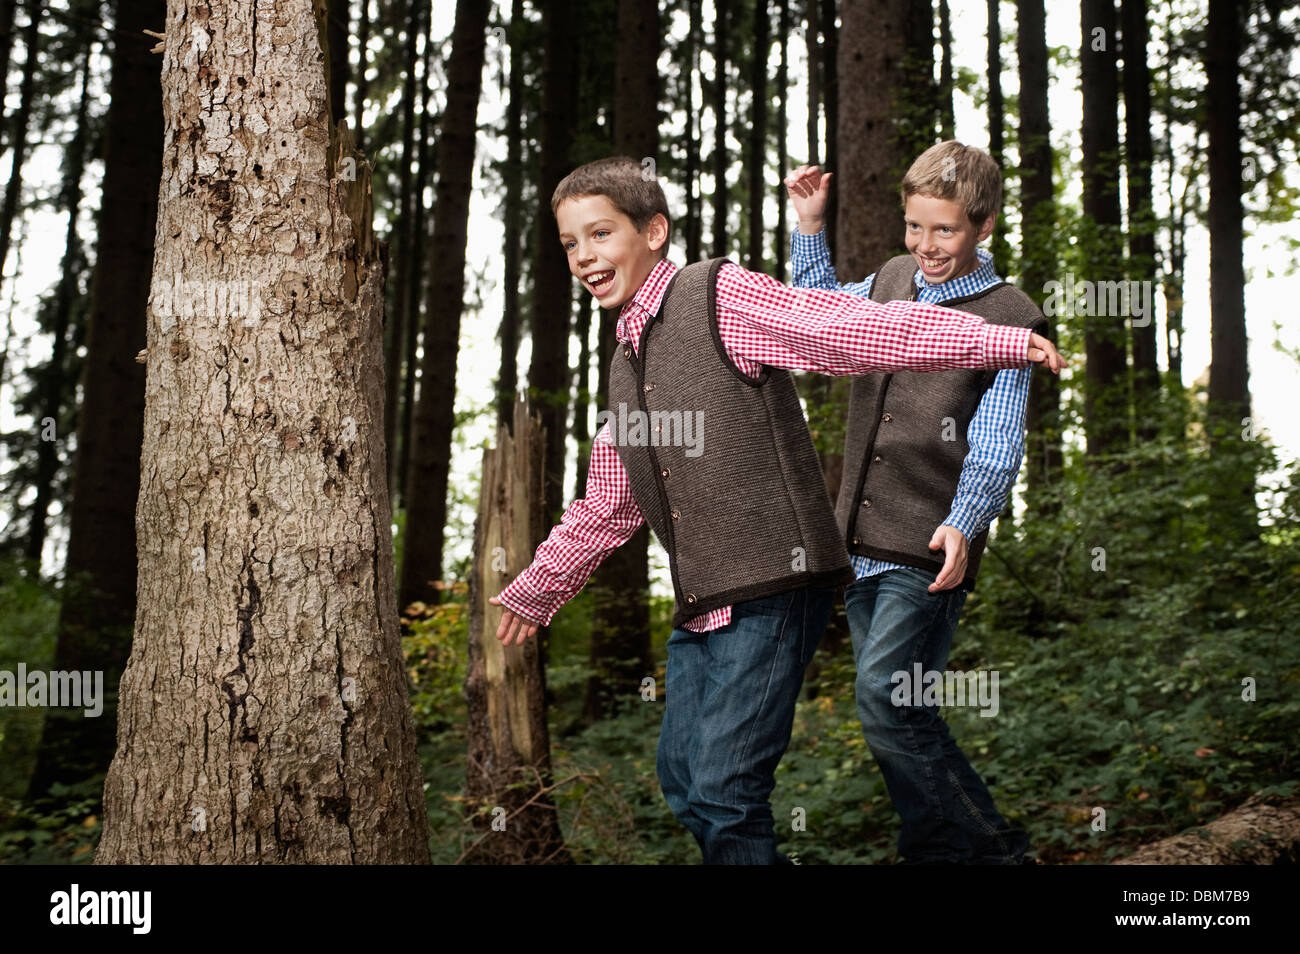 Two Boys Balancing On Tree Trunk In Forest, Bavaria, Germany, Europe - Stock Image